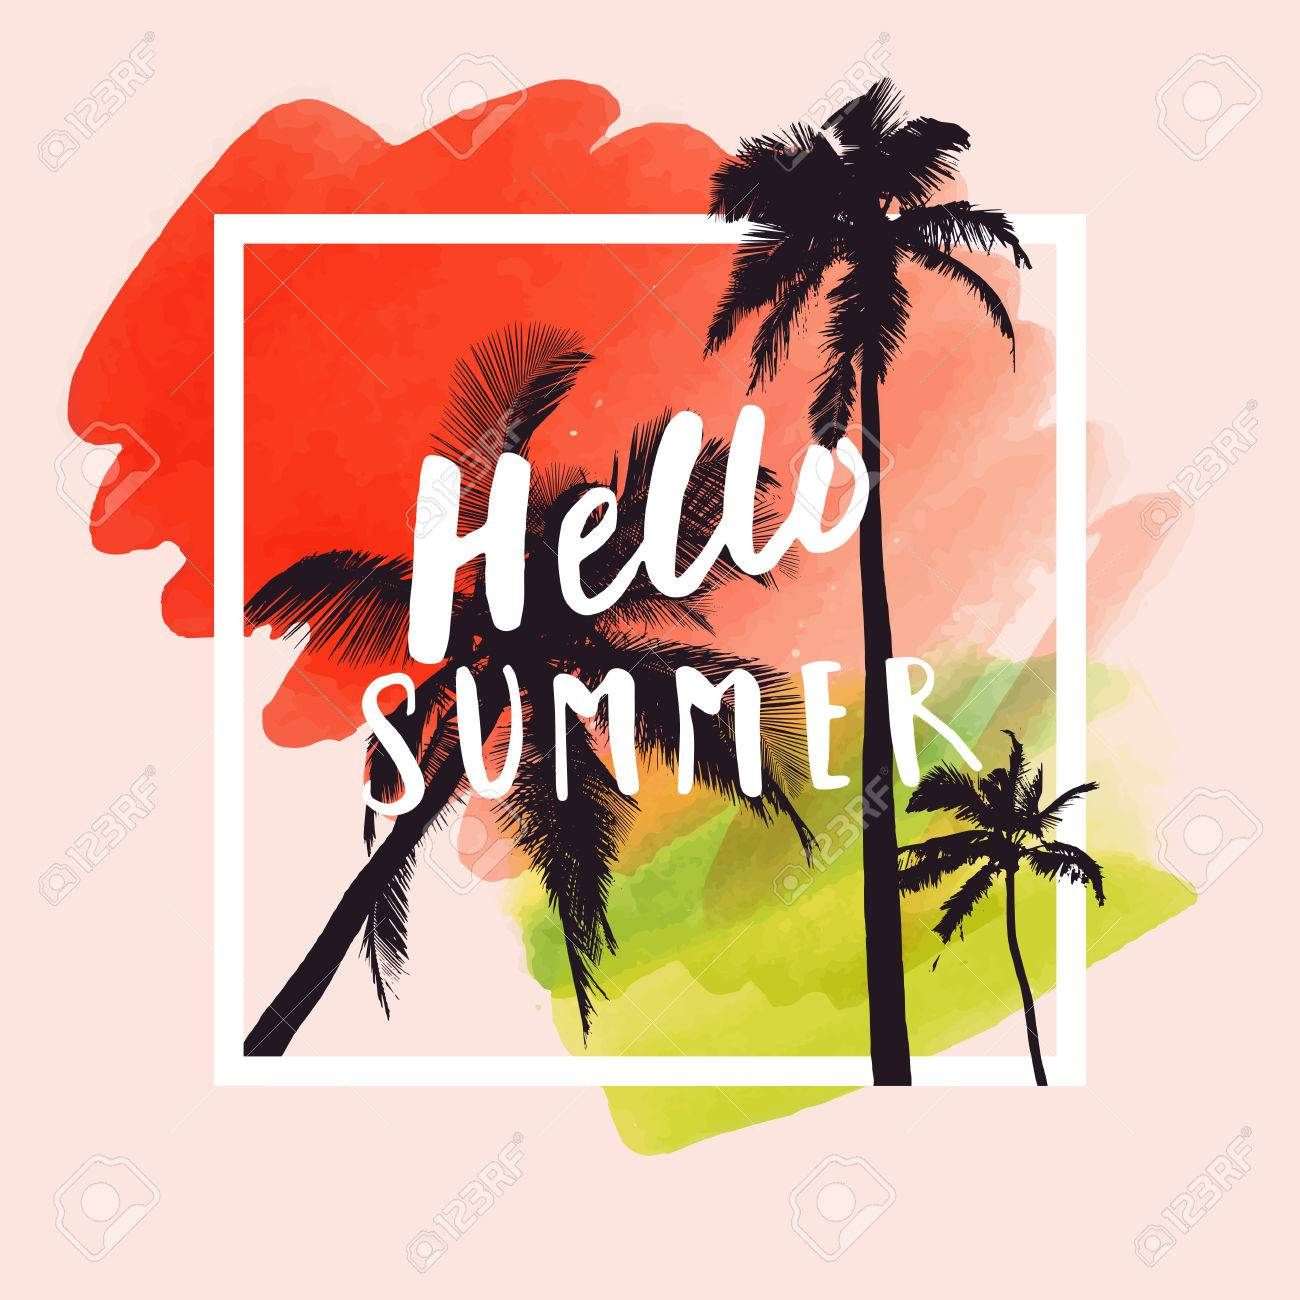 1281d181 Hello Summer. Modern calligraphic T-shirt design with flat palm trees on  bright colorful